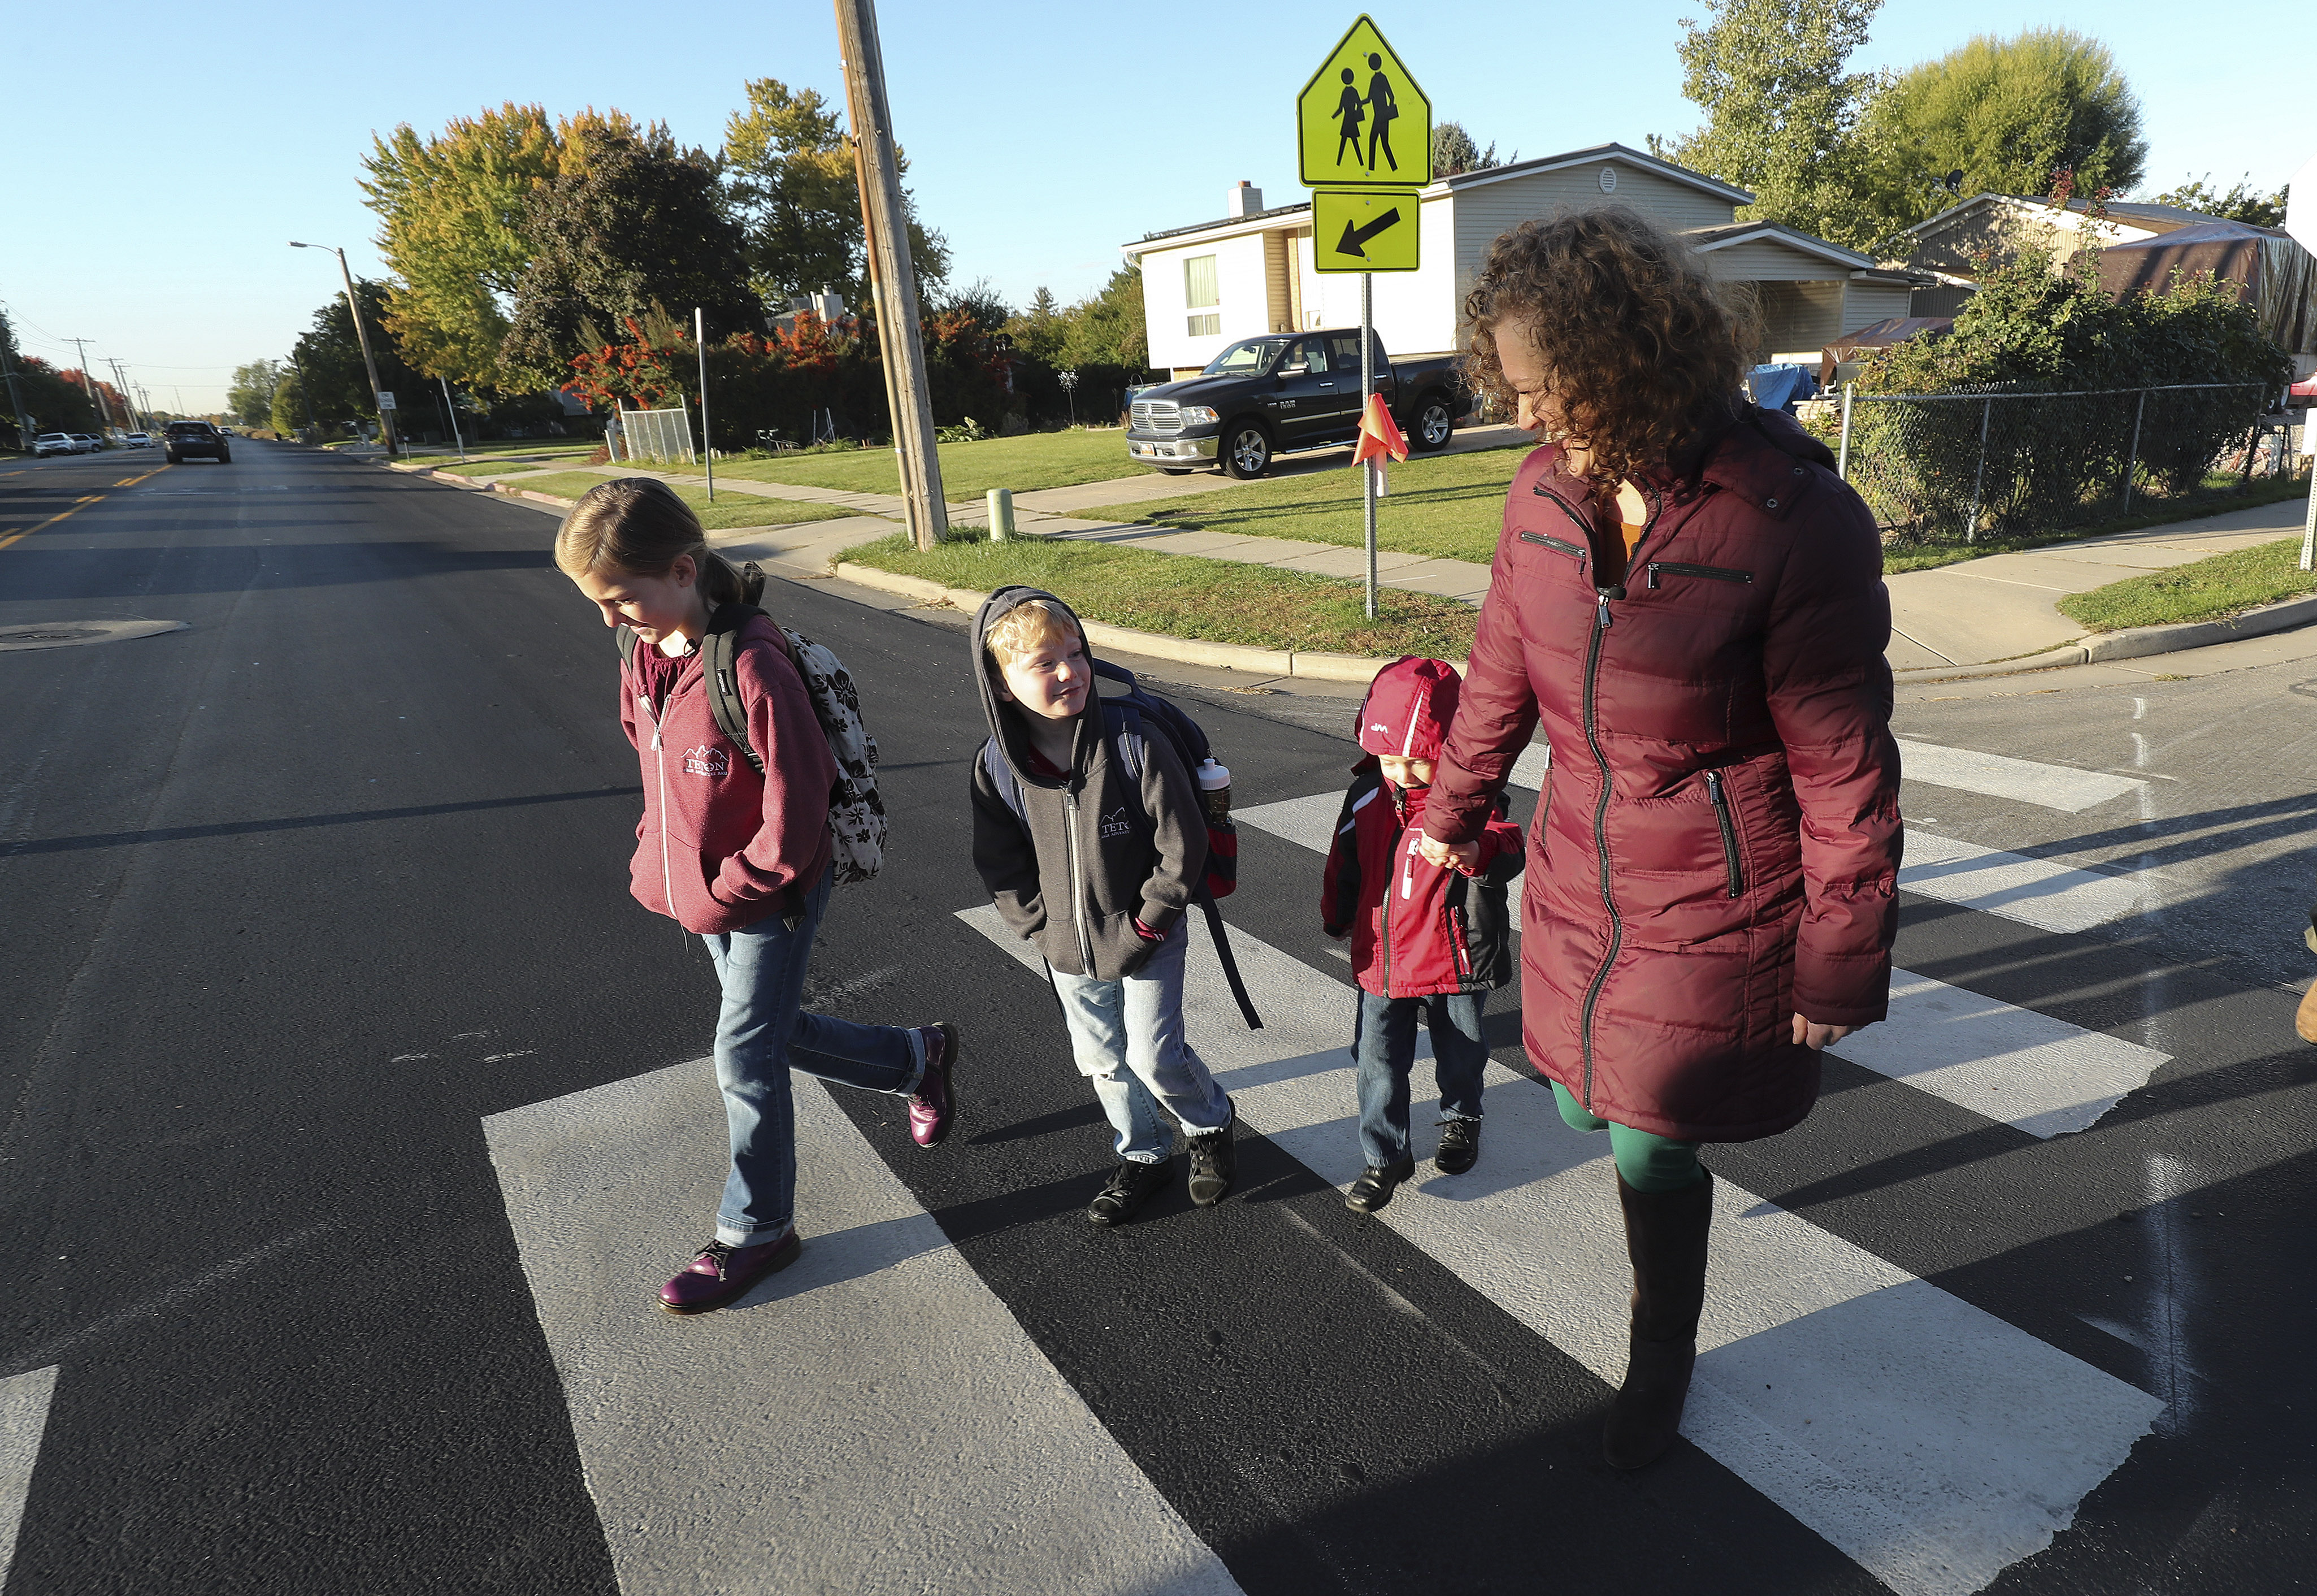 Trishelle Duncan walks her children, Abigail, 10, Luke, 6, and Nicholas, 3, to school in Kaysville on Tuesday, Oct. 8, 2019. The Duncan family has walked to and from school every day since Trishelle's epilepsy diagnosis. Duncan credits their improved family life to this simple act of walking.